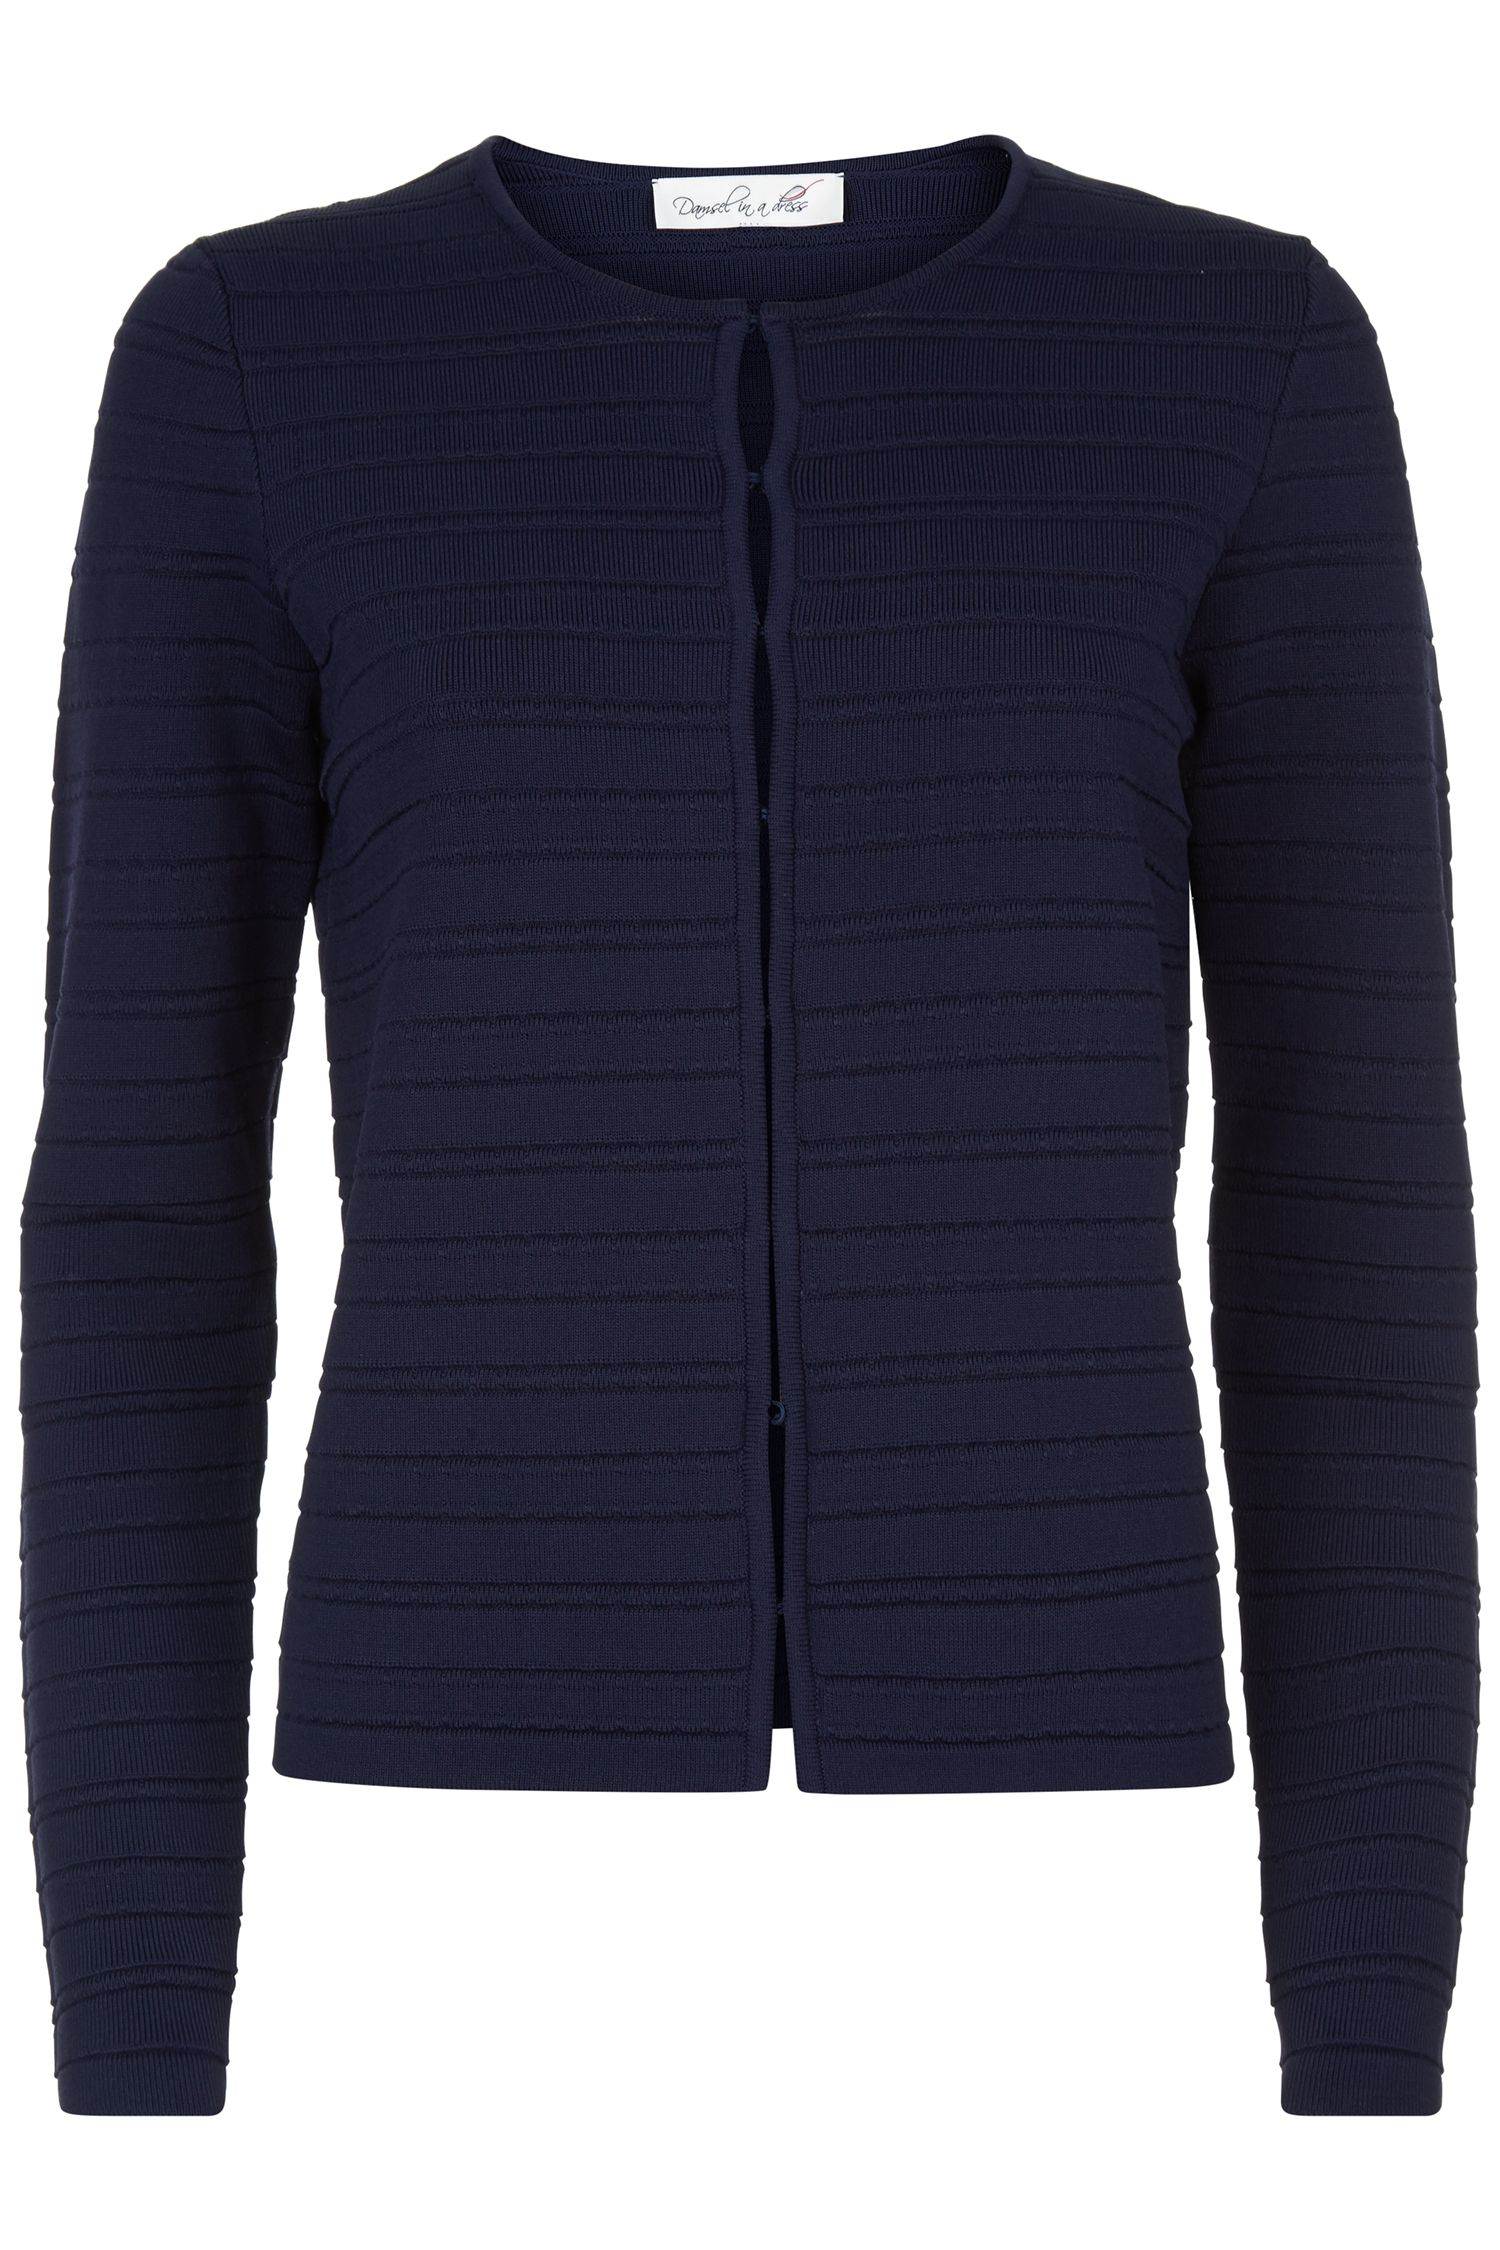 Damsel in a Dress Delia Knitted Jacket, Blue